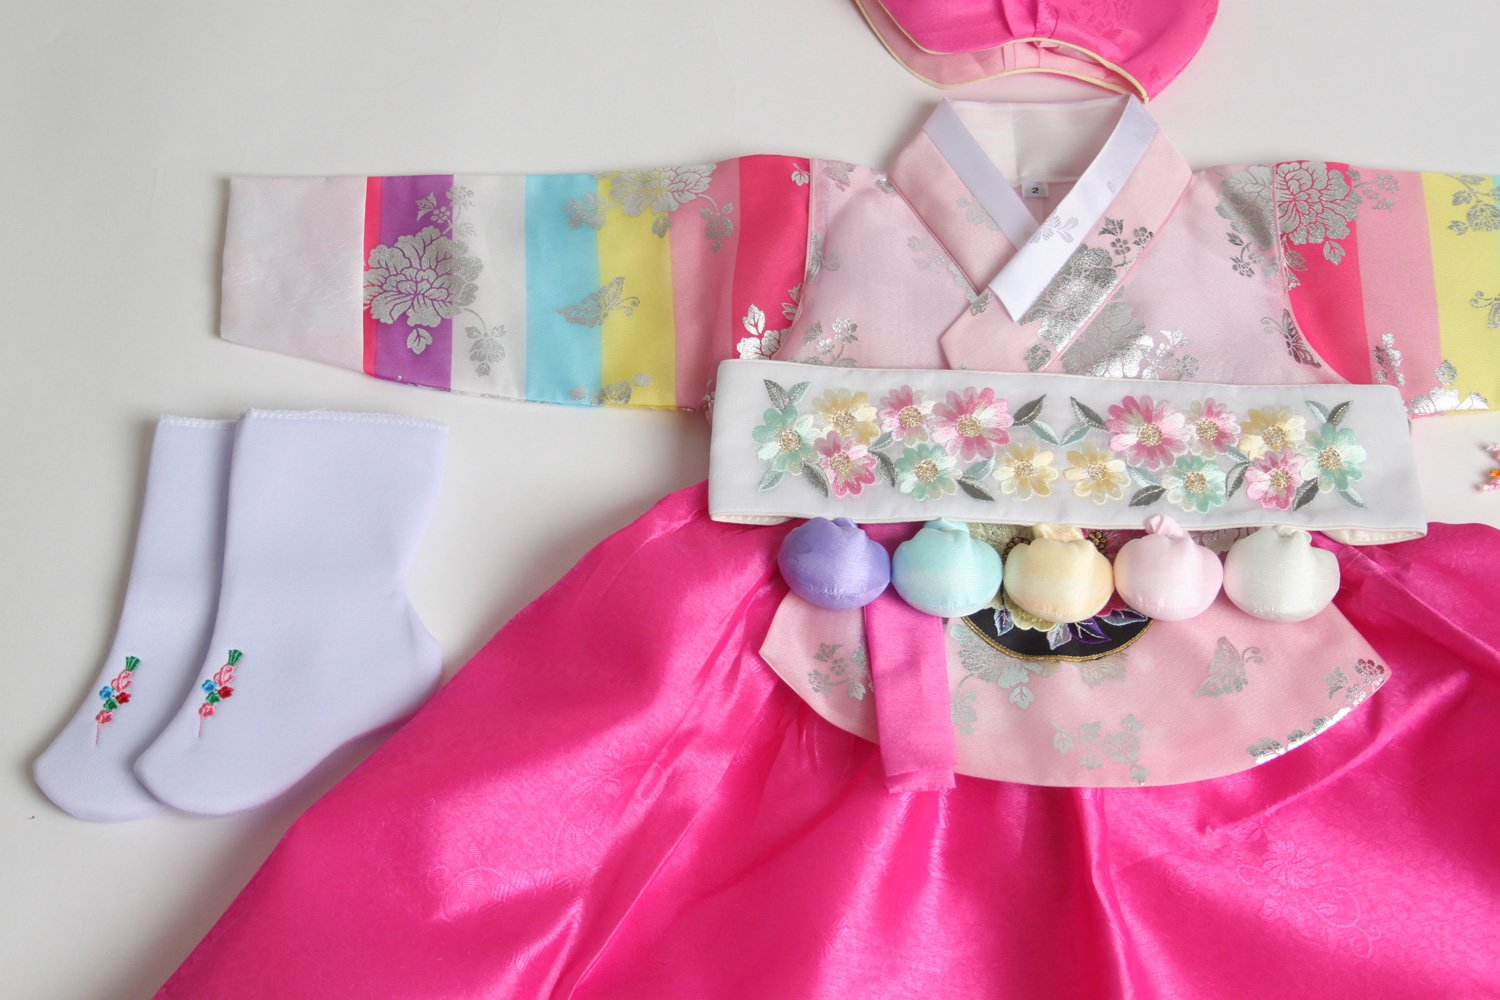 Korean hanbok girls DOLBOK 1st birthday traditional costumes hb062 by hanbok store (Image #4)